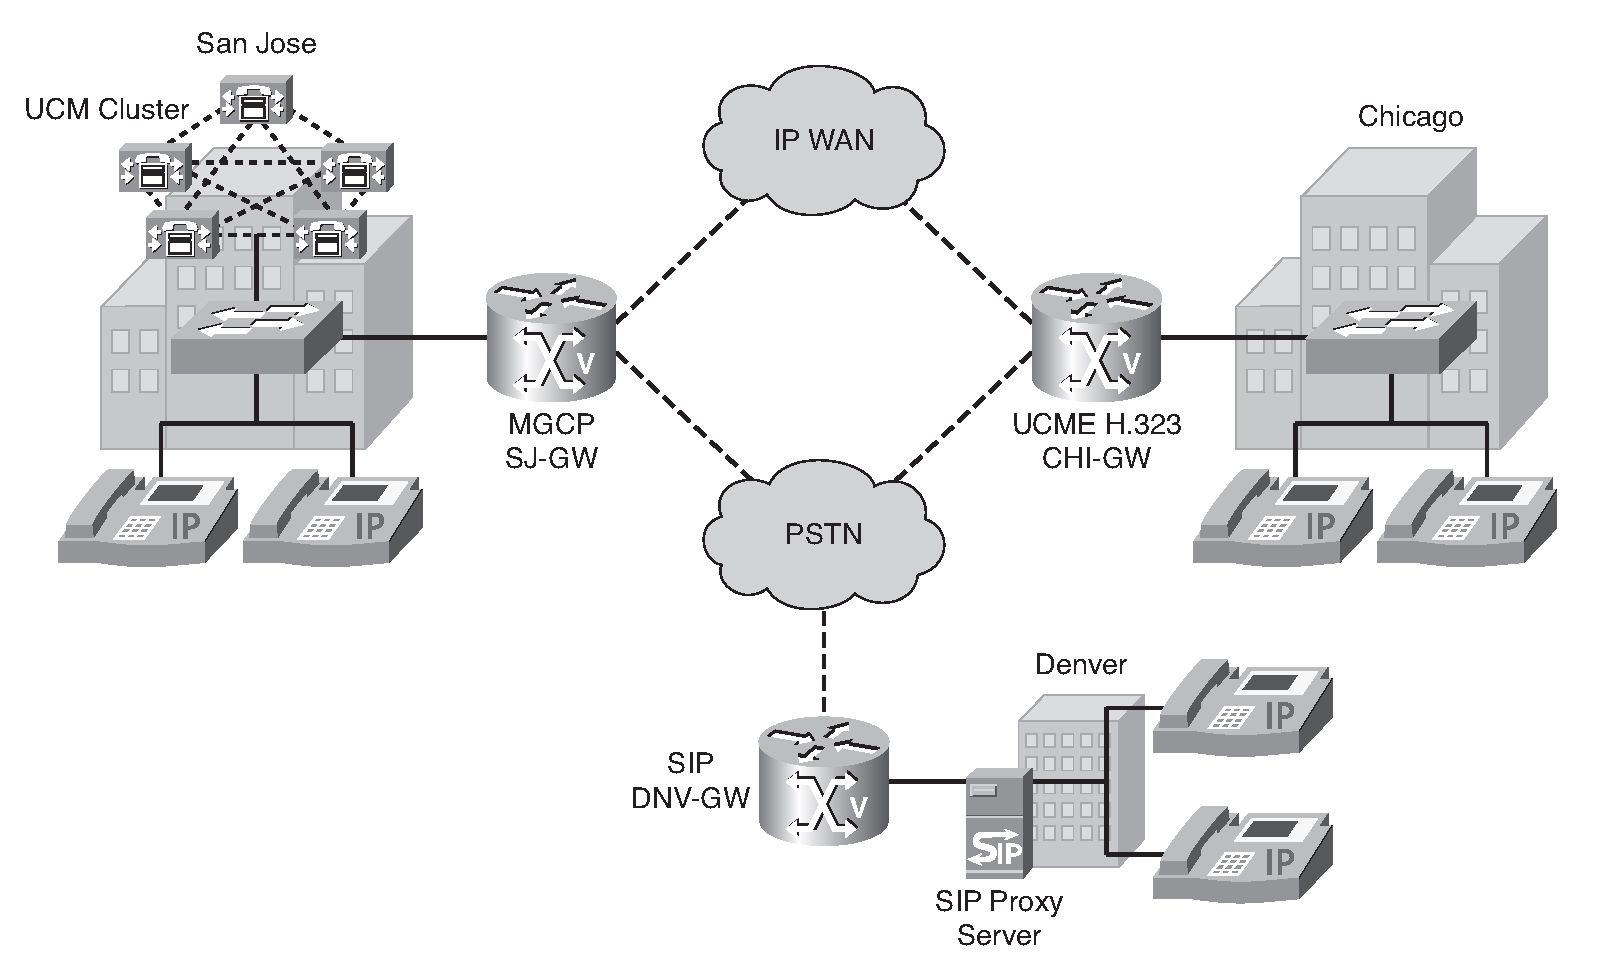 Introducing VoIP Gateways (Introducing Voice over IP Networks) Part 1